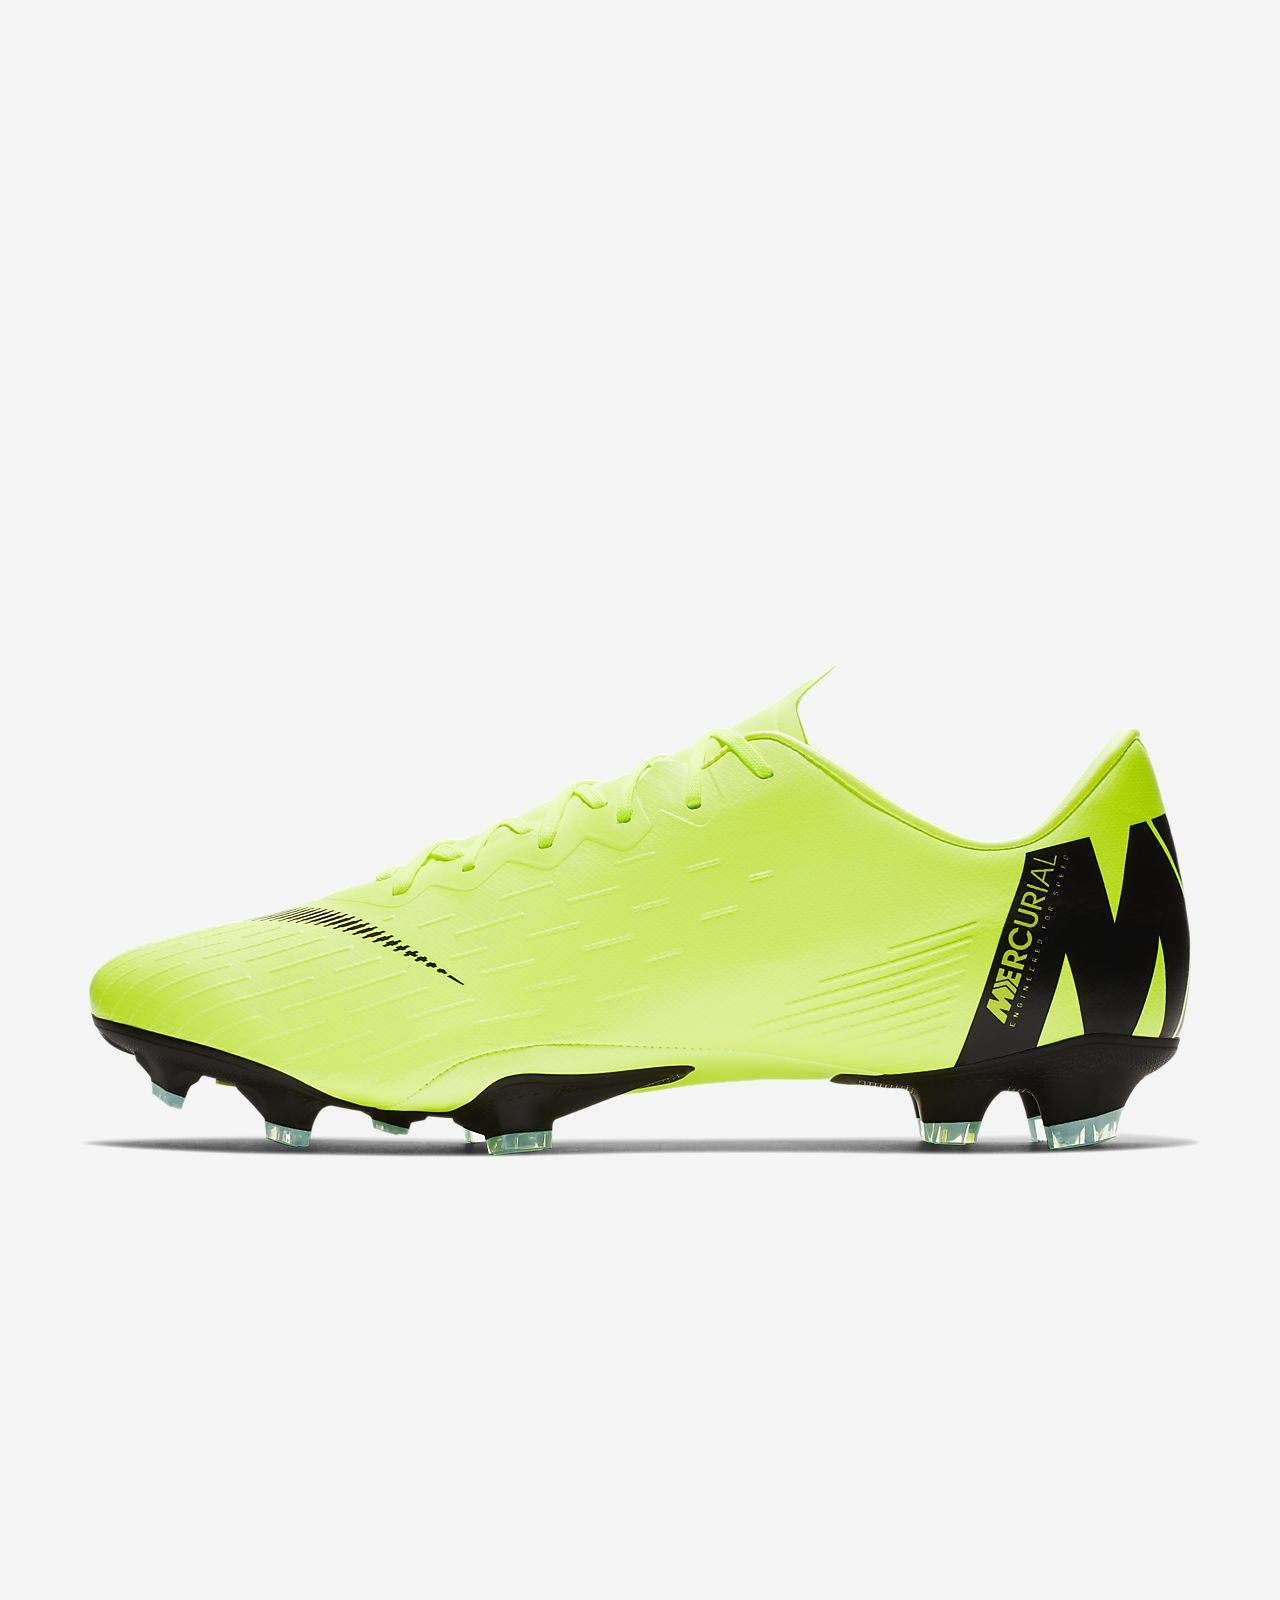 Nike Mercurial Vapor XII Pro Firm-Ground Football Boot